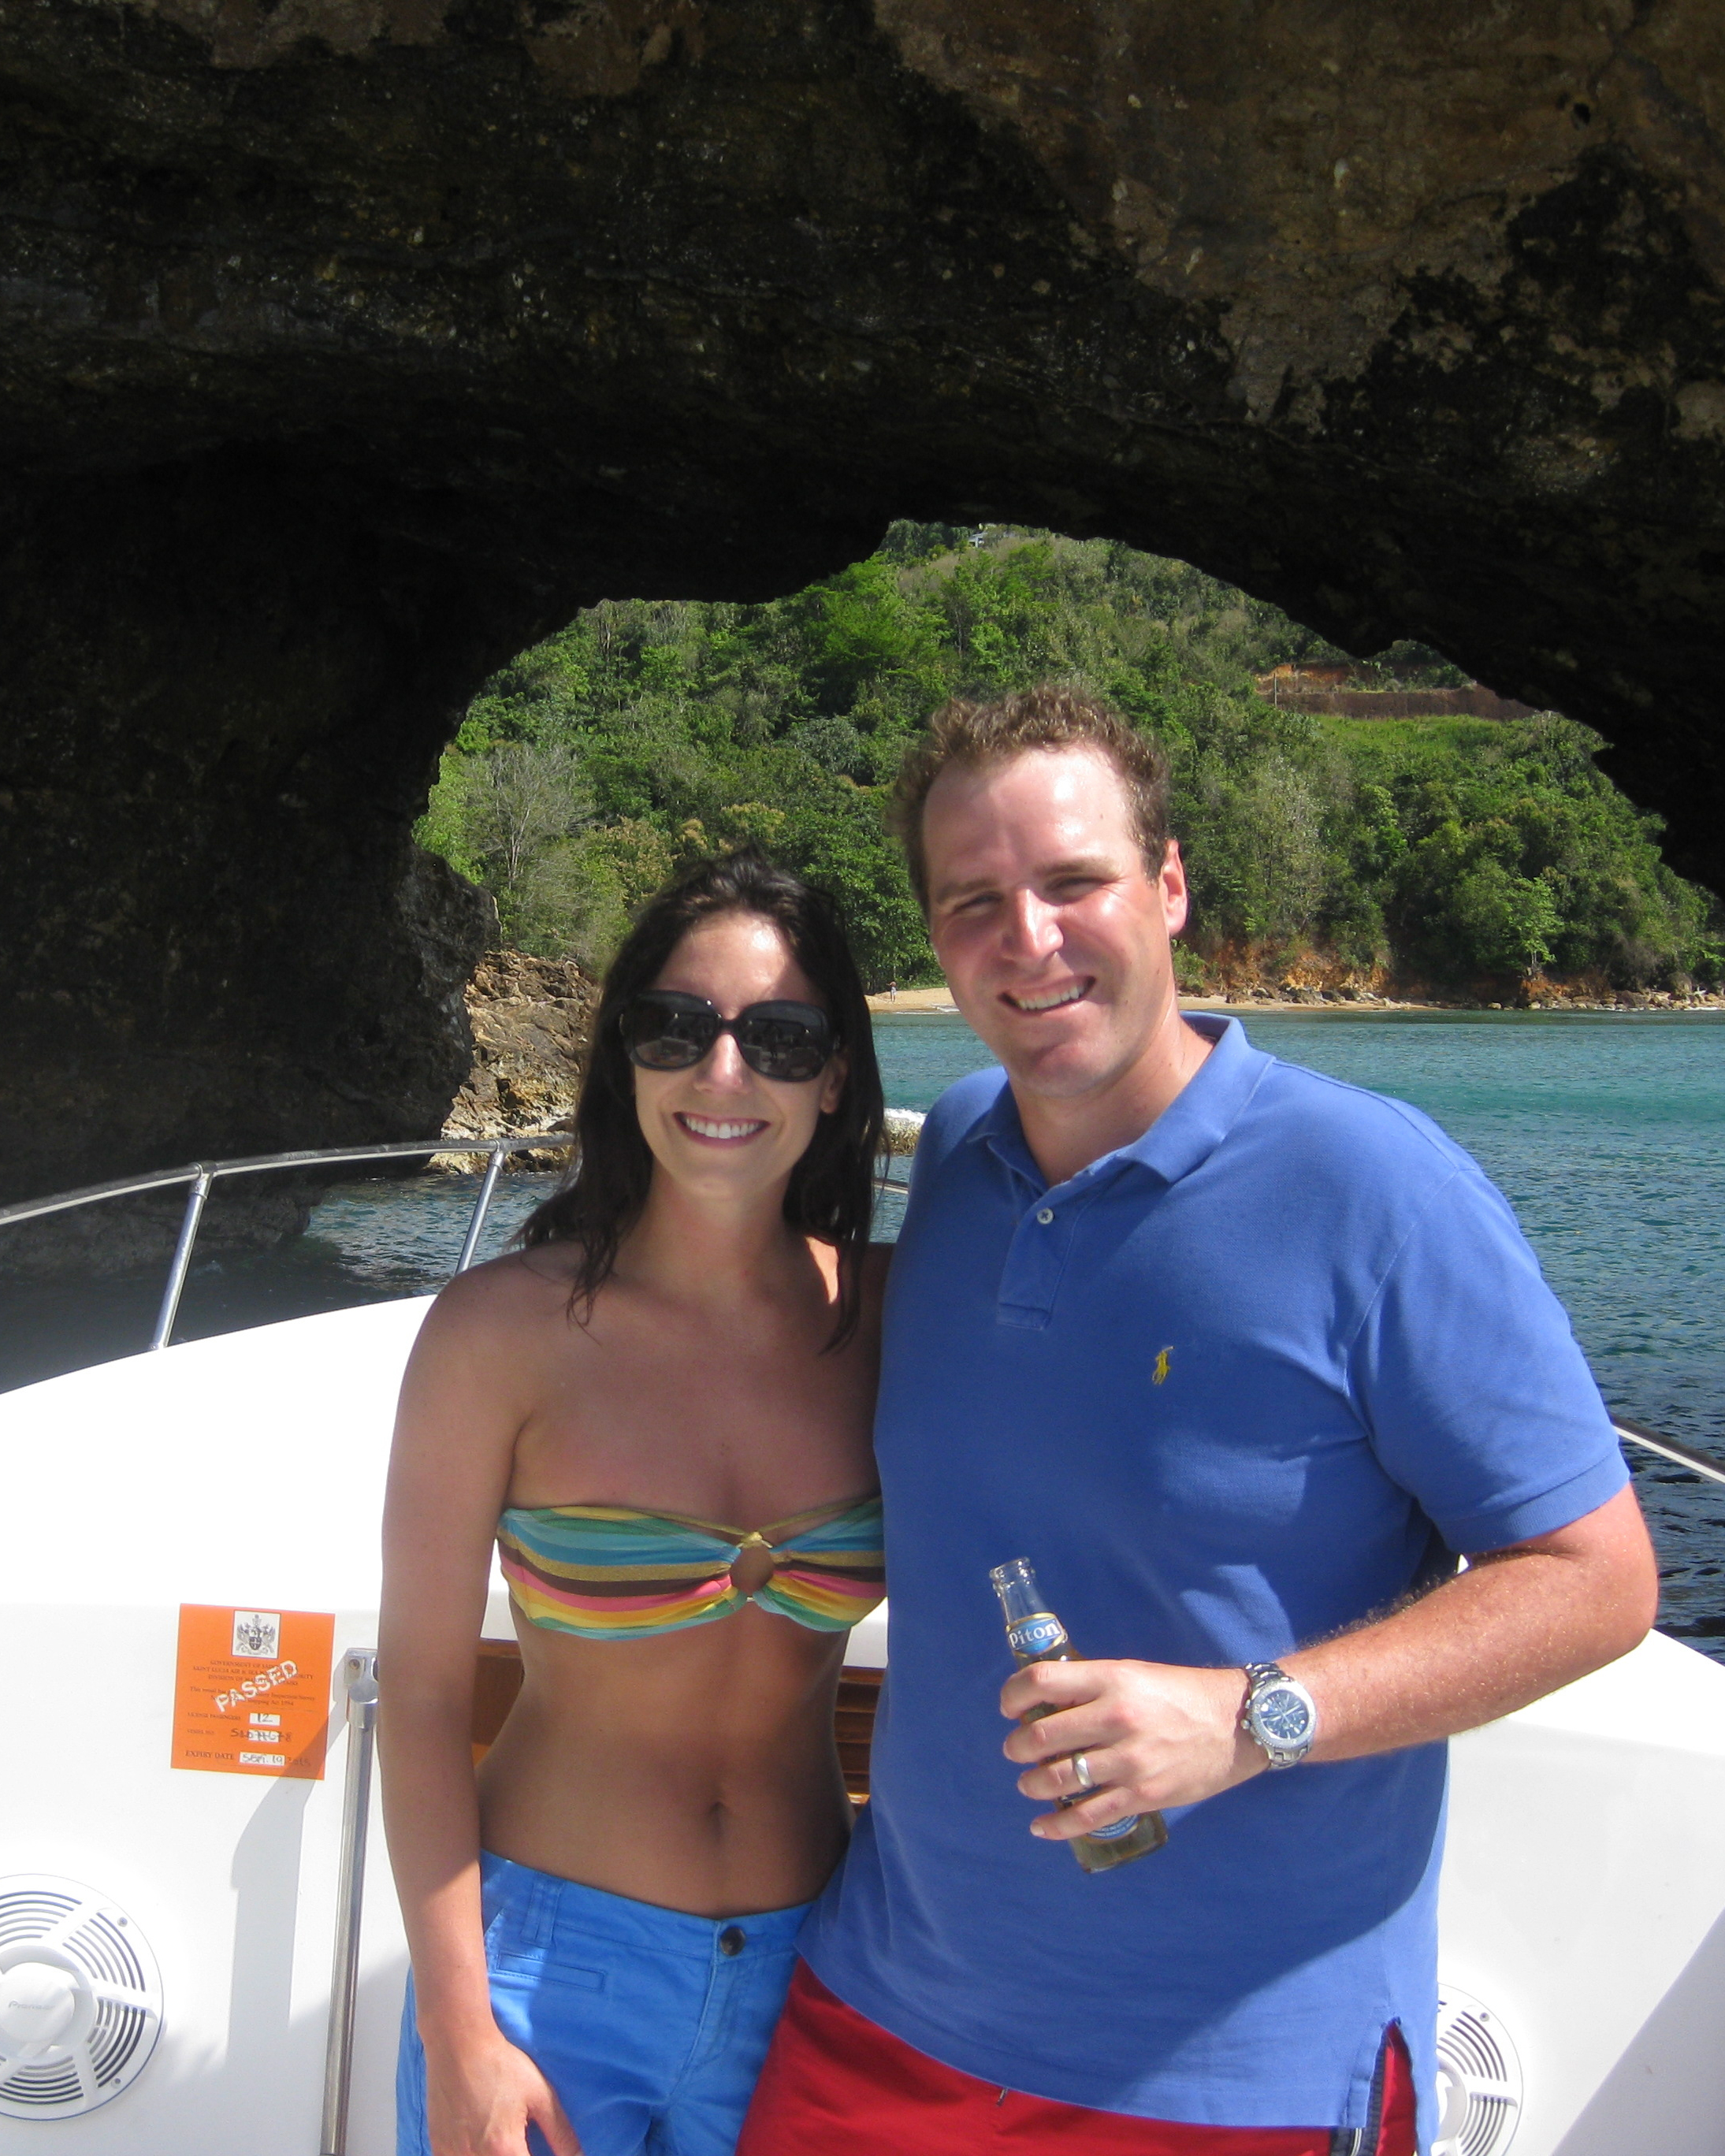 honeymoon-diary-st-lucia-lindsey-scott-wds110664-img-1687-1114.jpg